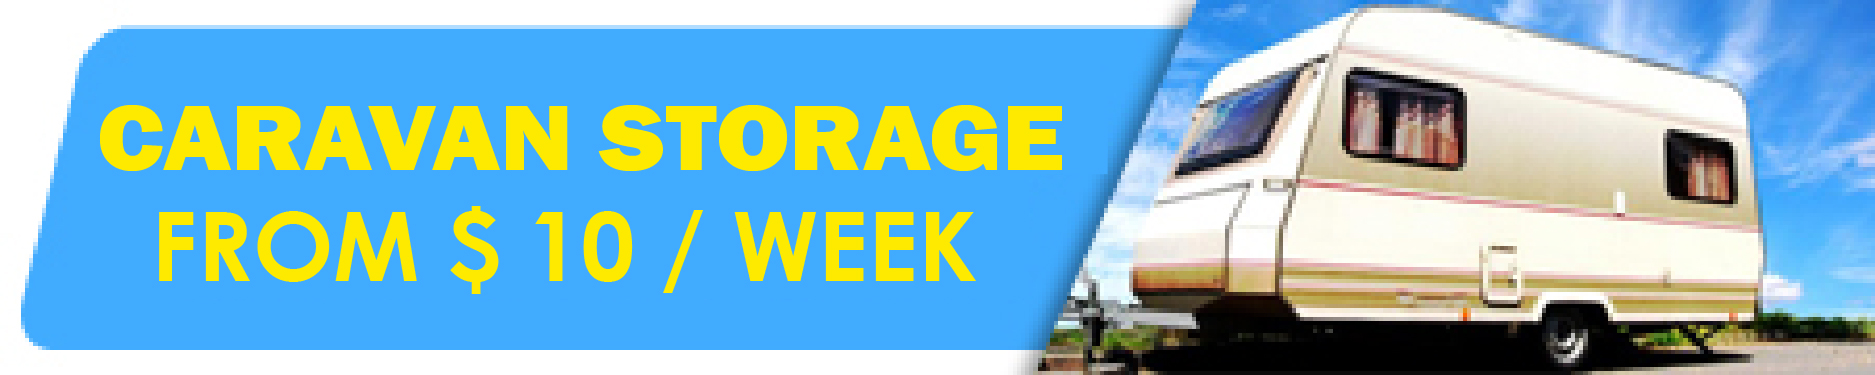 Caravan Storage in Adelaide from $15 per week - Access Storage